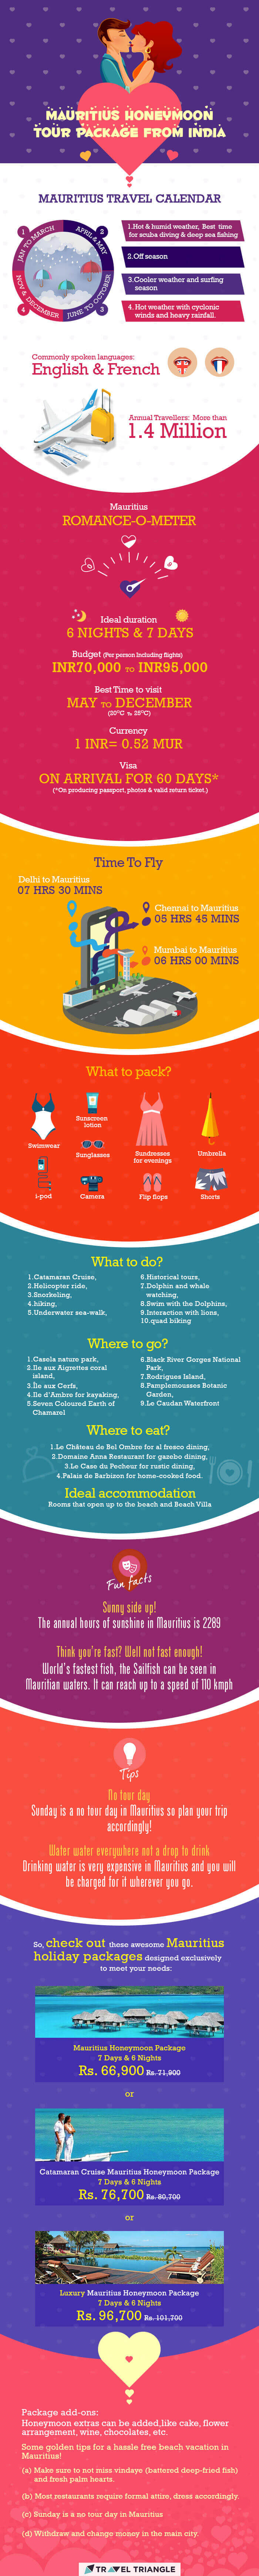 Save this infographic to help you plan the perfect Mauritius honeymoon package from India